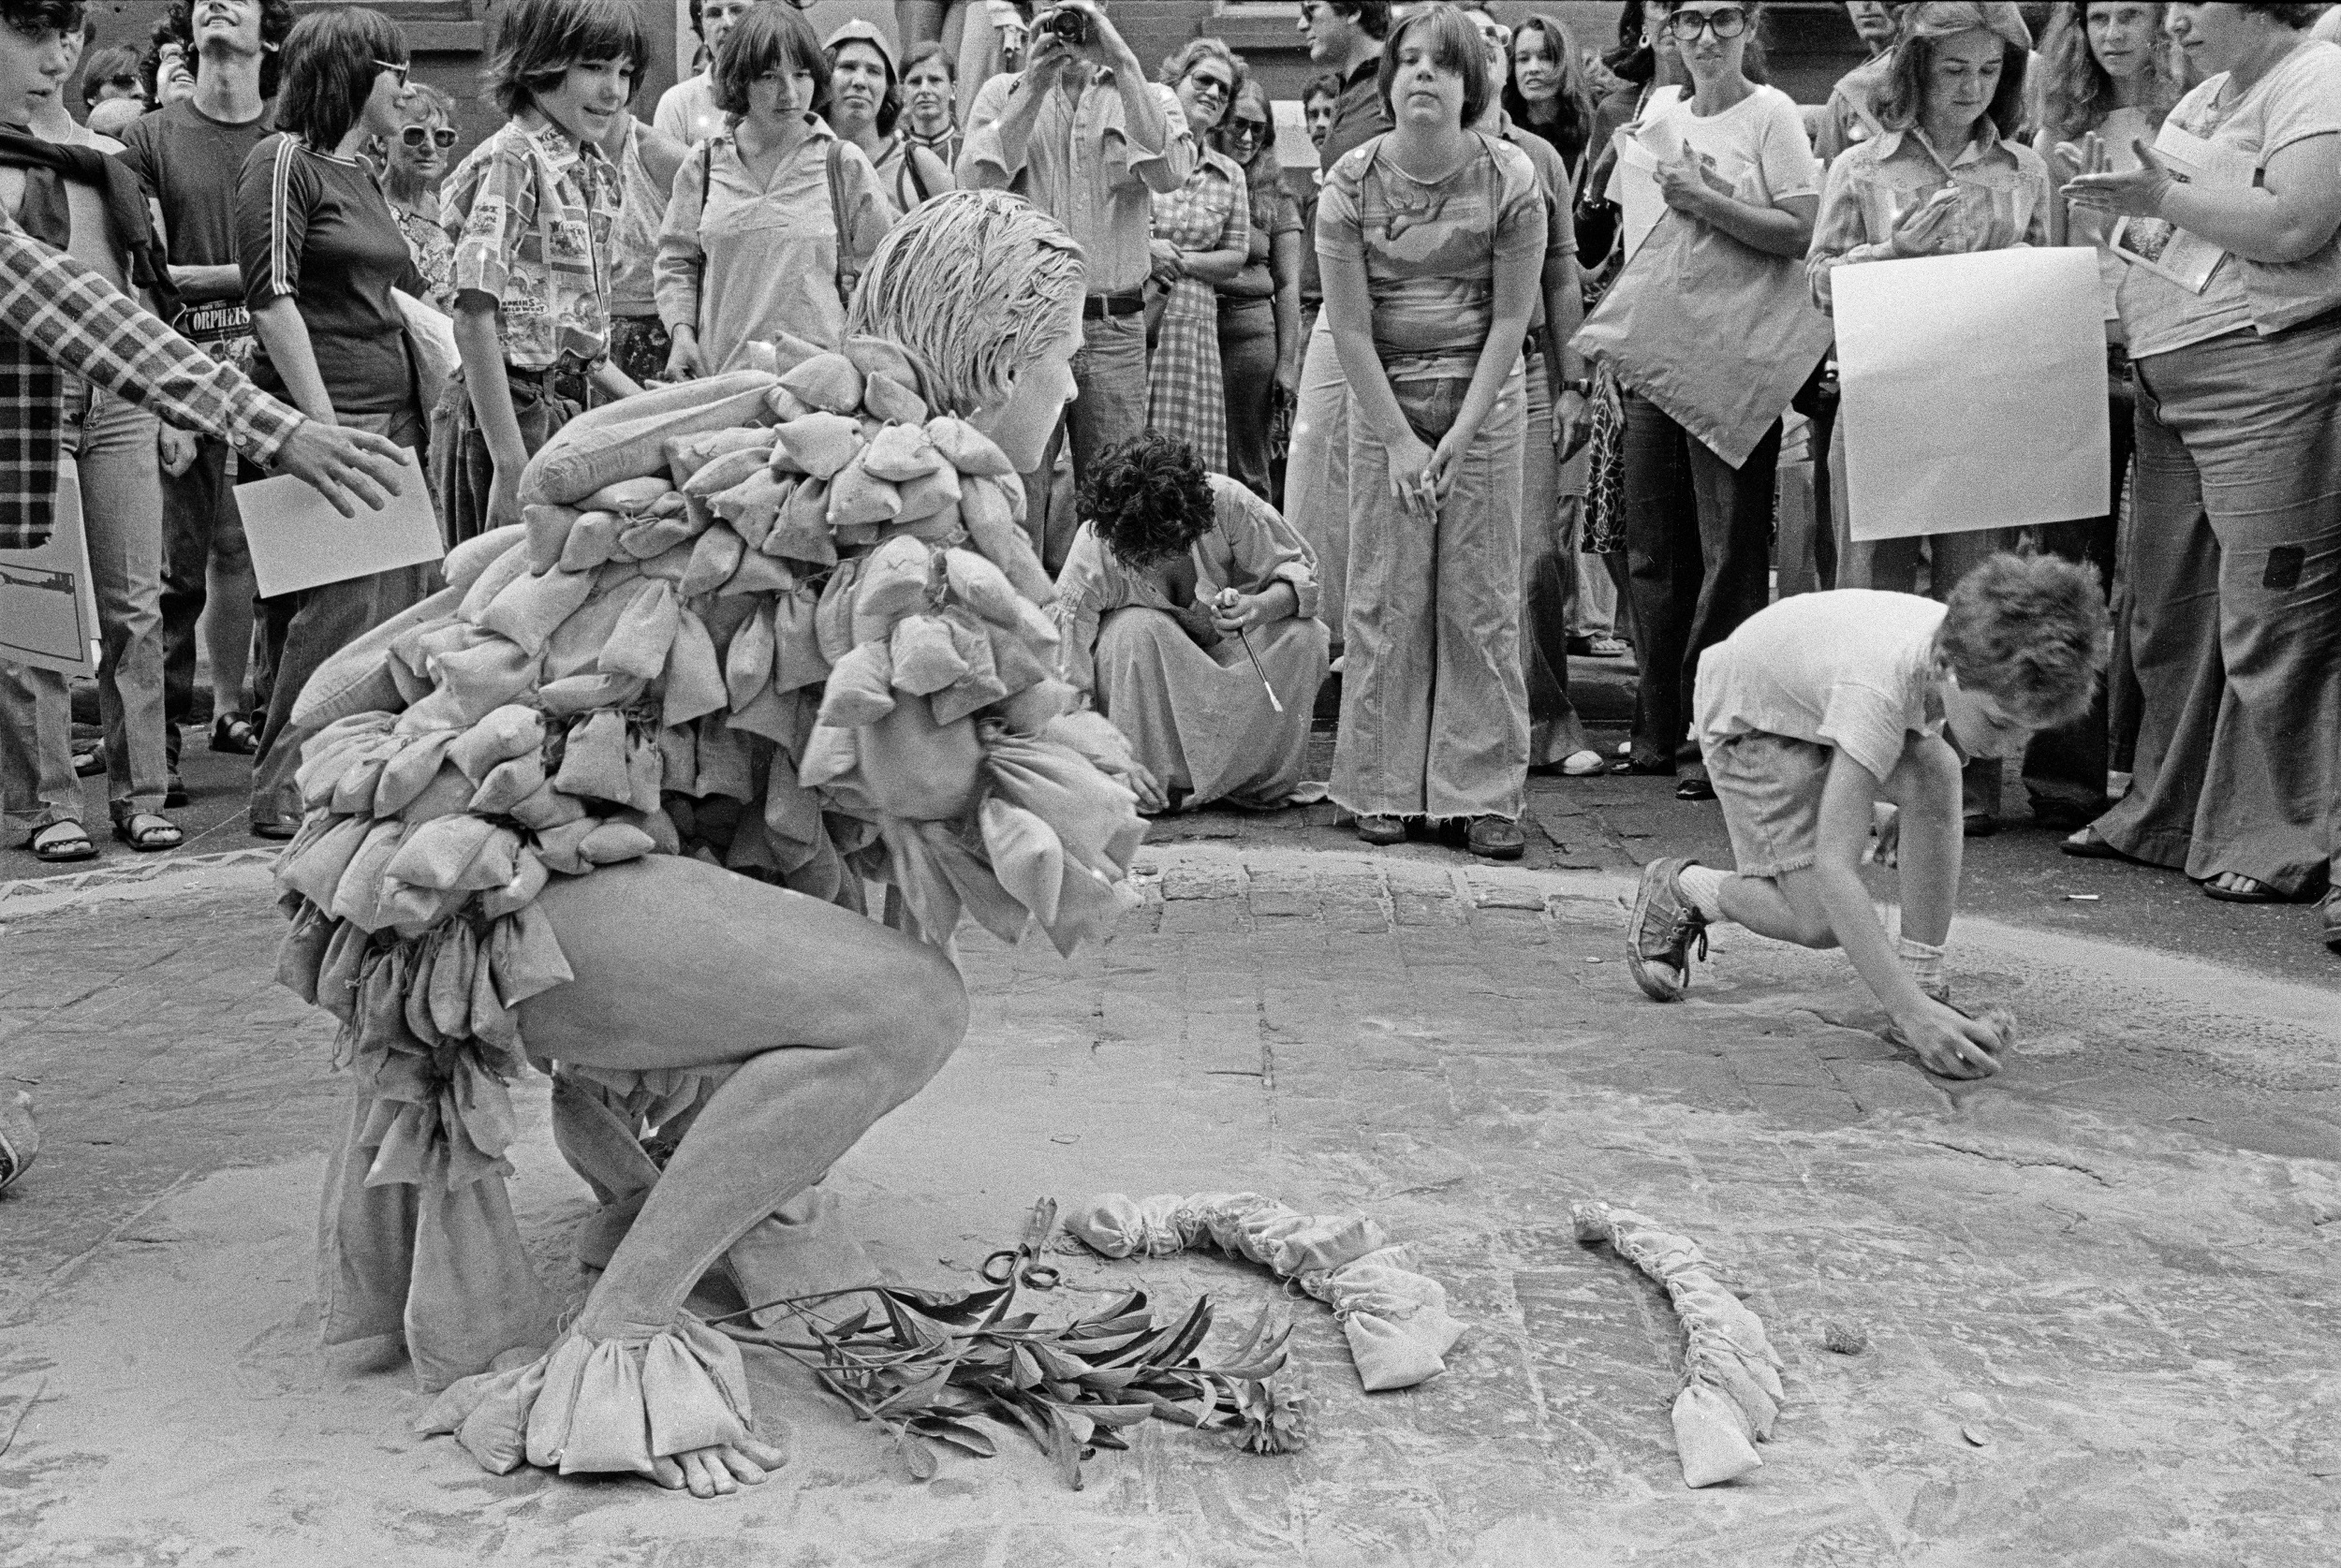 A performer wearing a costume made of lots of small pouches is squatting in the middle of a crowd and looking at a child who is touching the ground